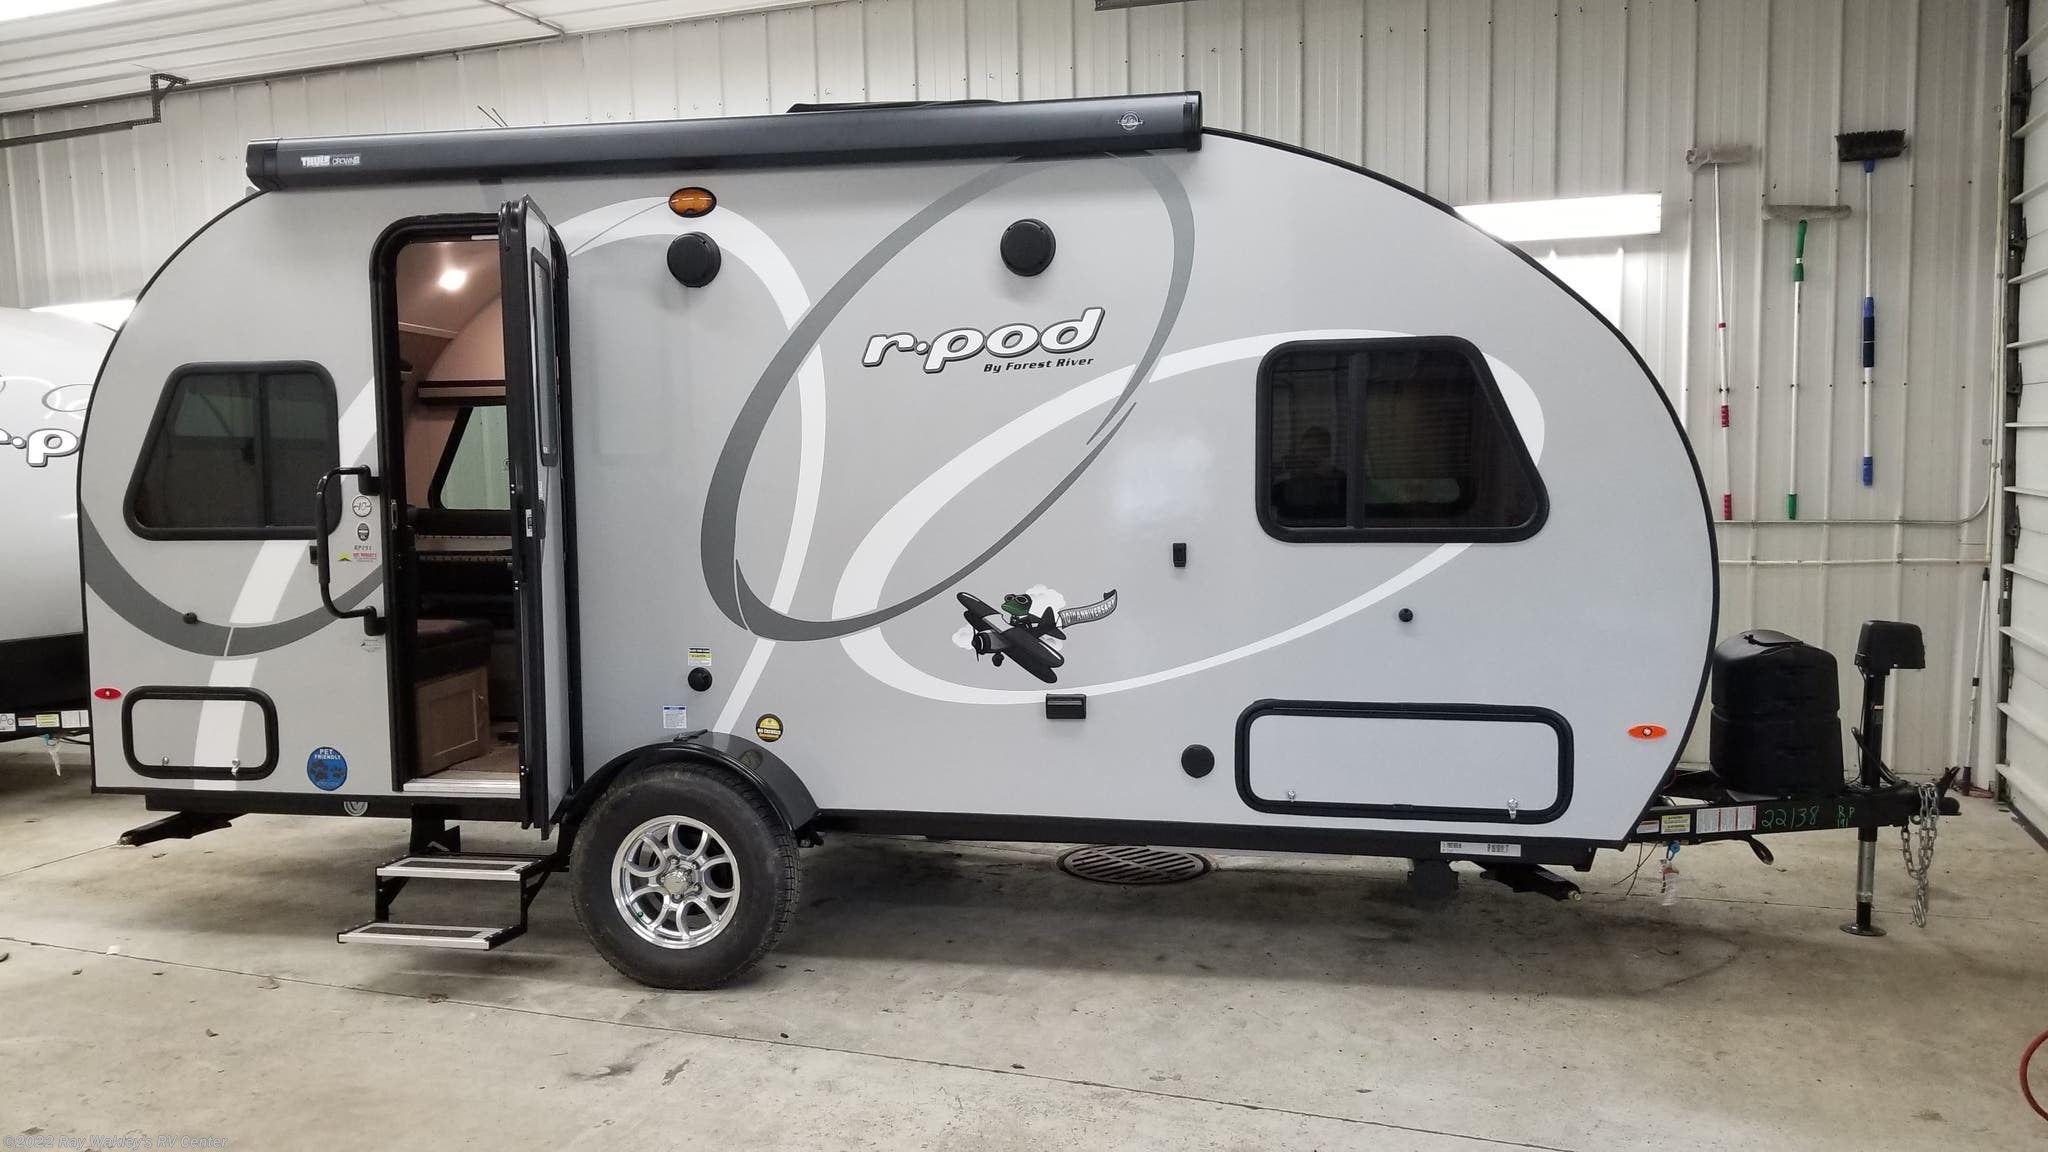 22522 - 2019 Forest River R-Pod RP-191 for sale in North East PA on